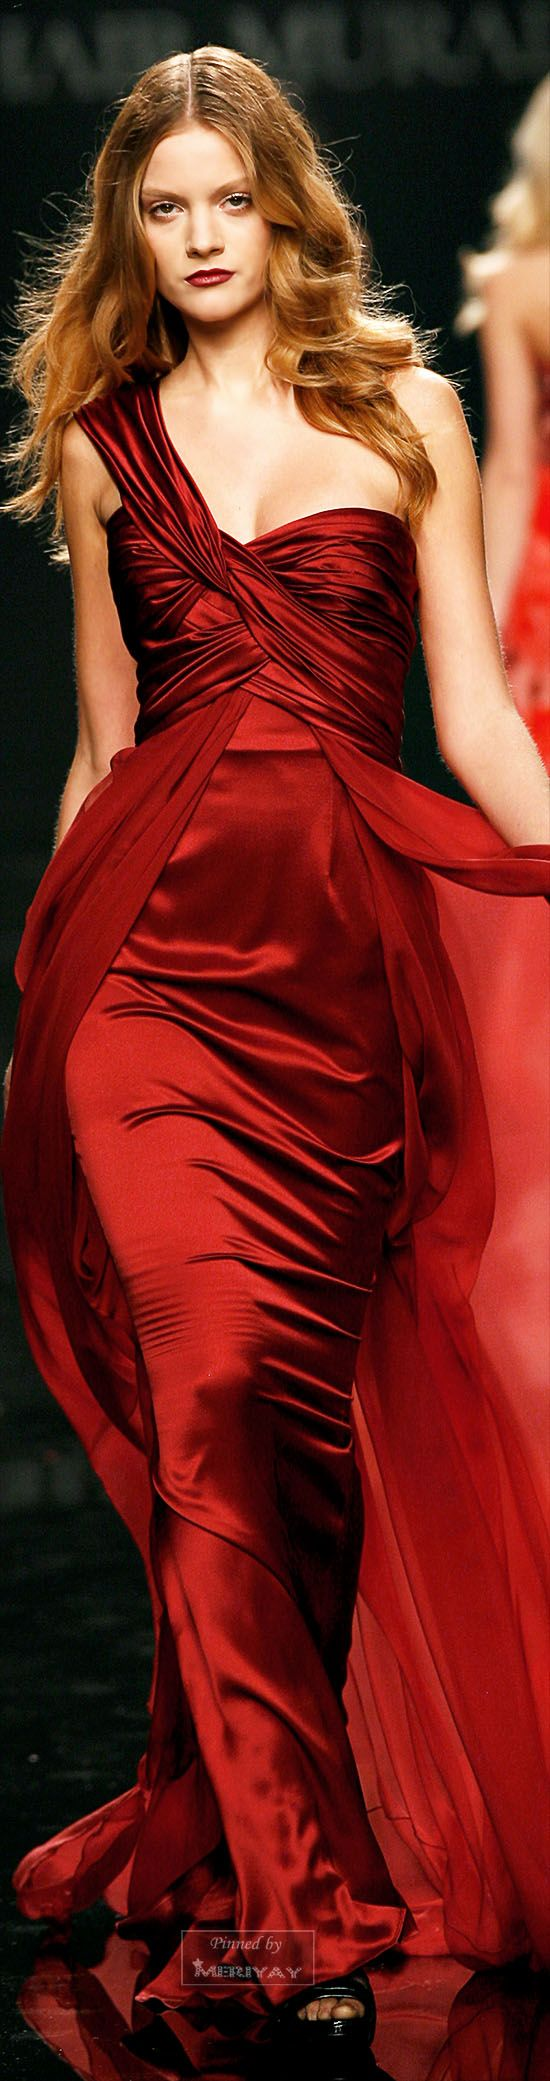 luscious deep red satin gown by Zuhair Murad - Fall Winter 2009/2010 - Istg everything Murad designs is the best thing i've ever seen. every single one of h                                                                                                                                                                                 More